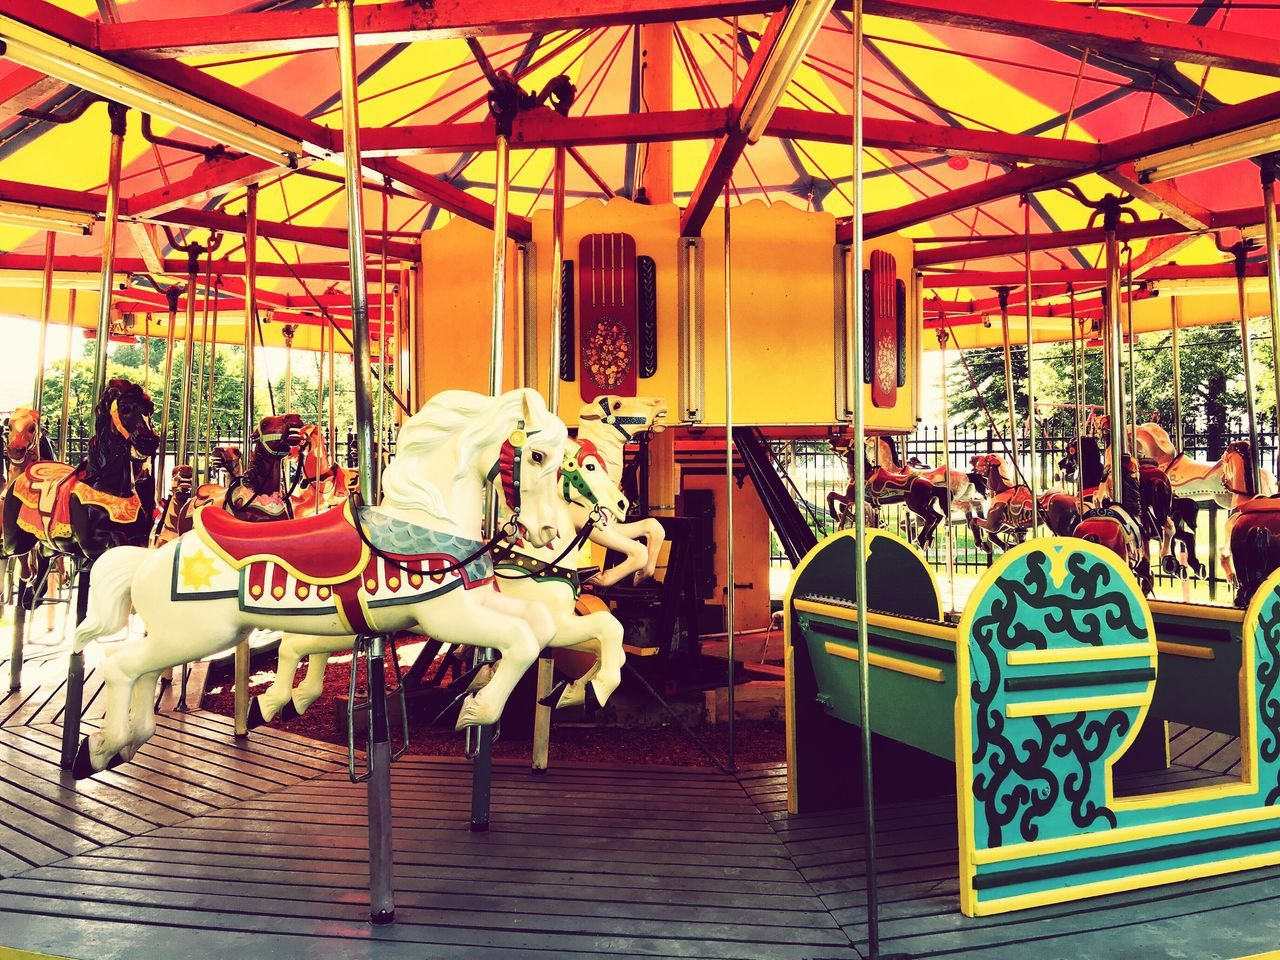 amusement park, horse, carousel, carousel horses, amusement park ride, arts culture and entertainment, animal representation, leisure activity, merry-go-round, sitting, day, outdoors, animal themes, no people